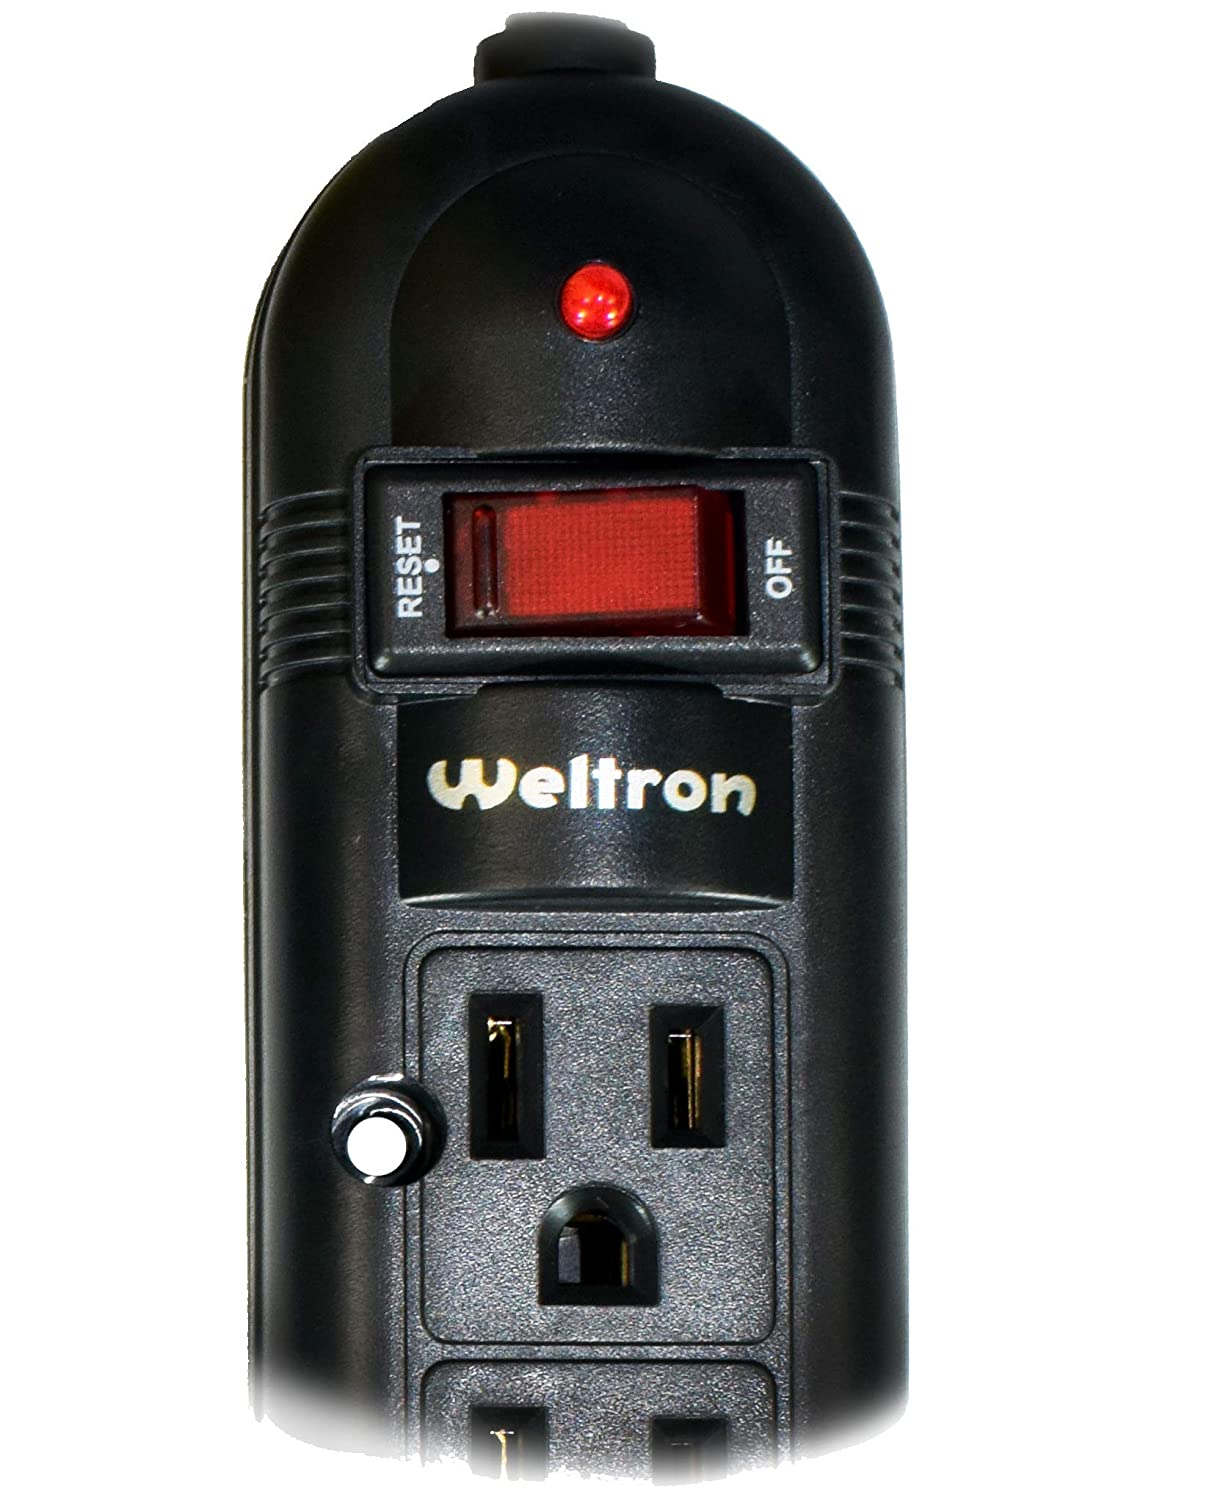 Weltron 6 Outlet Black Surge Protector Power Strip Wall Mount Long 20 Foot Cord Cable Winston International Ltd WSP-600PLF-20BK 750 Joules